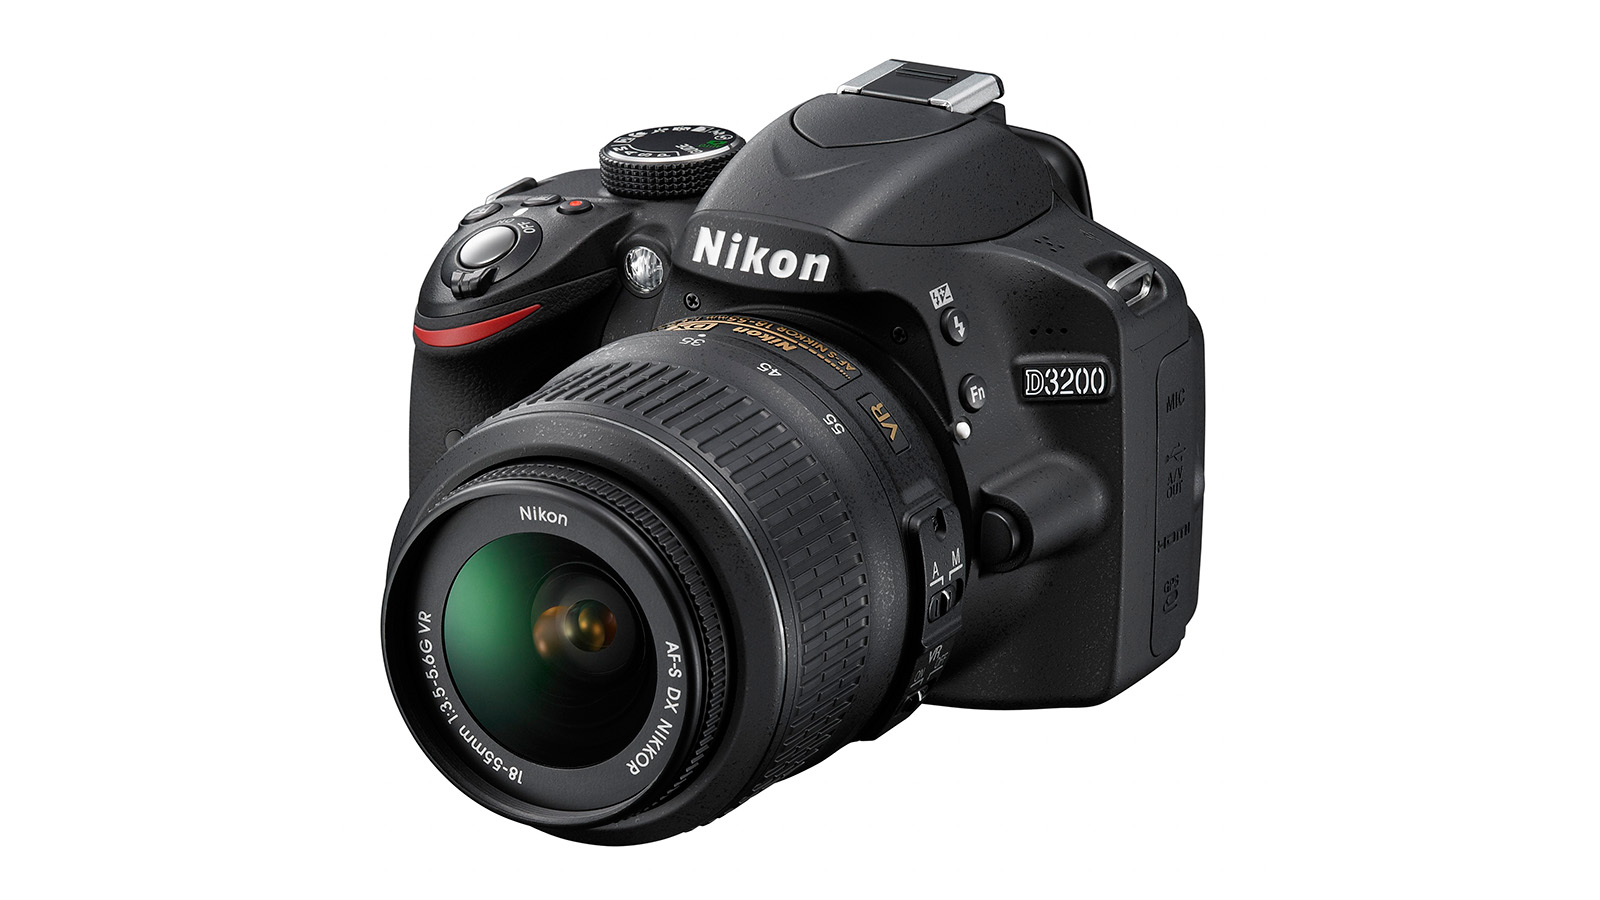 Nikon Announces the D3200 Digital SLR Camera